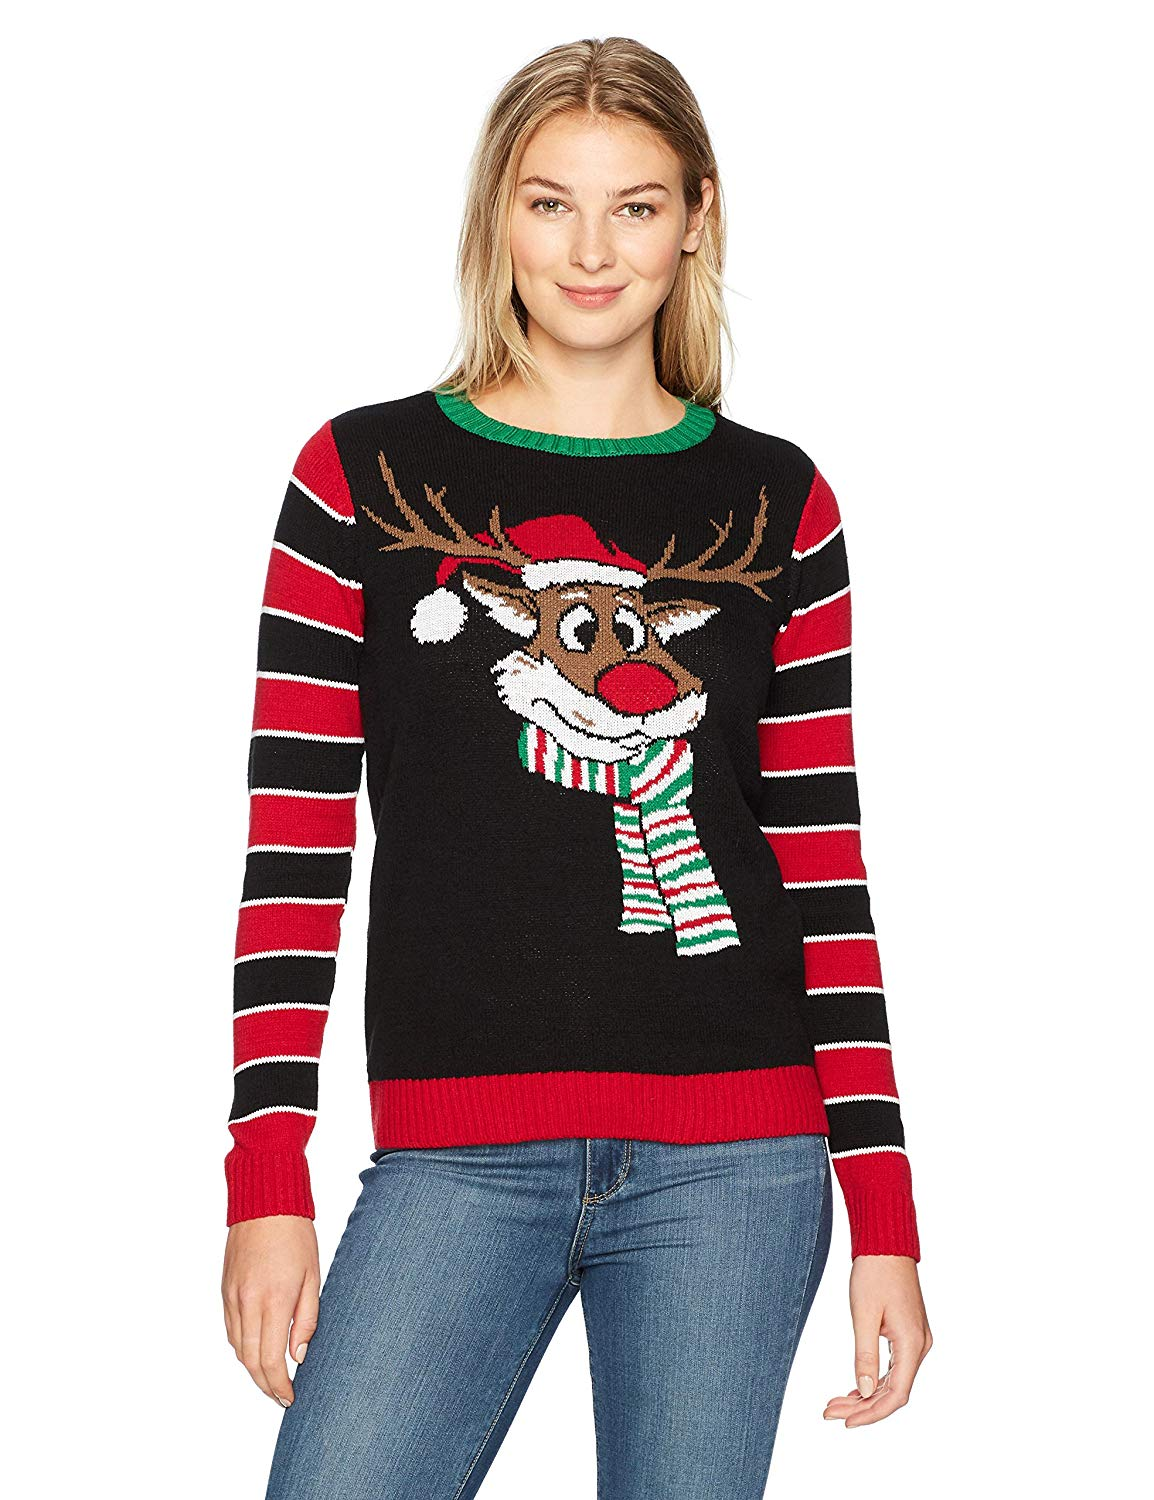 76d5c6f4990e Get Quotations · Ugly Christmas Sweater Women's Reindeer W/Back Embroidery  Detail Sweater